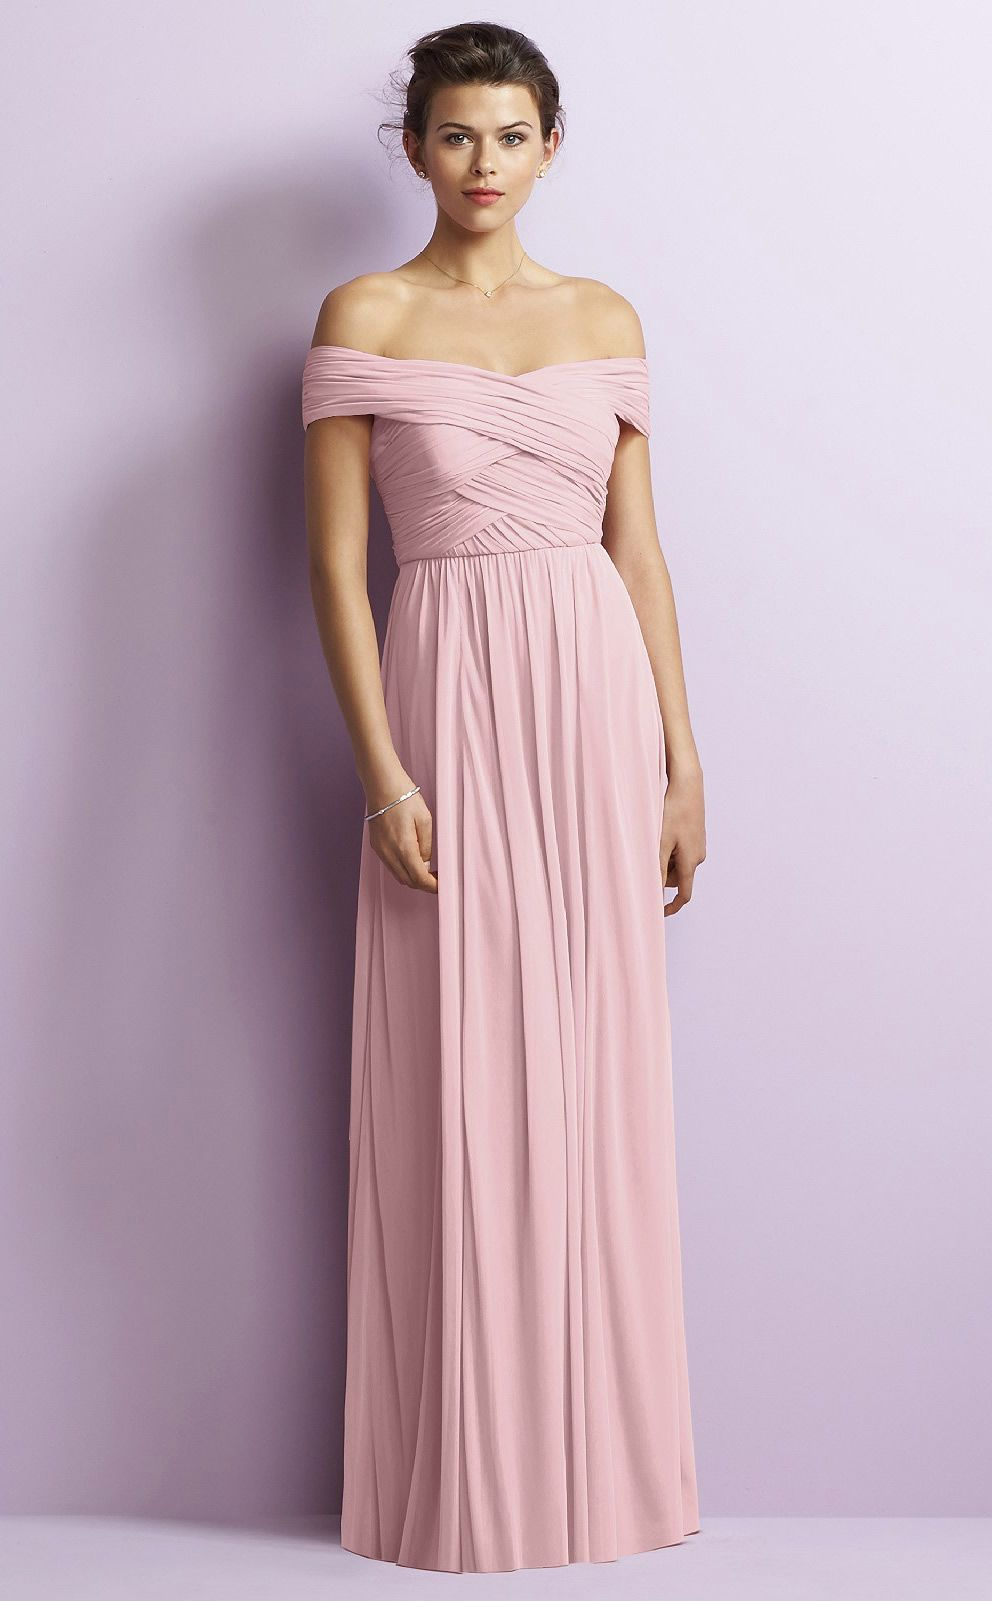 Floor length off the shoulder a line pink chiffon bridesmaid dresses floor length off the shoulder a line pink chiffon bridesmaid dresses bd1650 ombrellifo Image collections